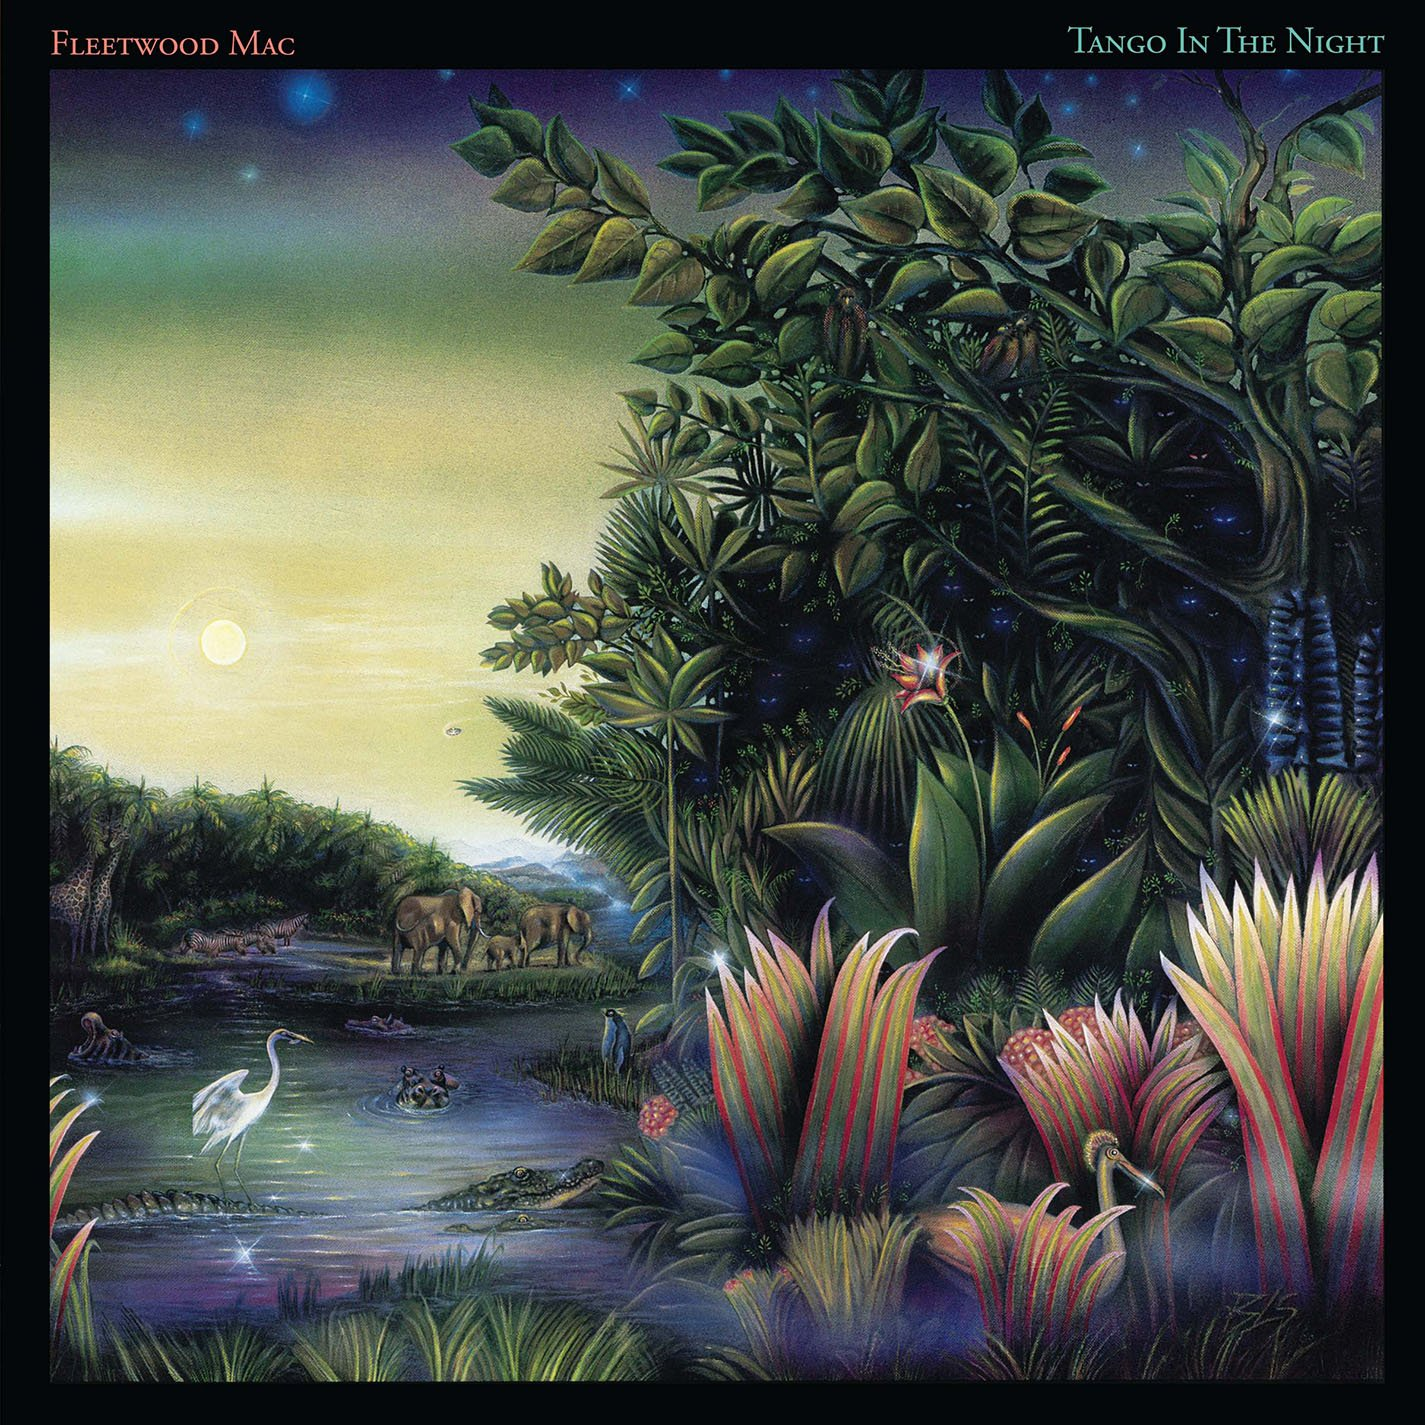 CD : Fleetwood Mac - Tango In The Night (With DVD, With LP, Deluxe Edition, 5 Disc)